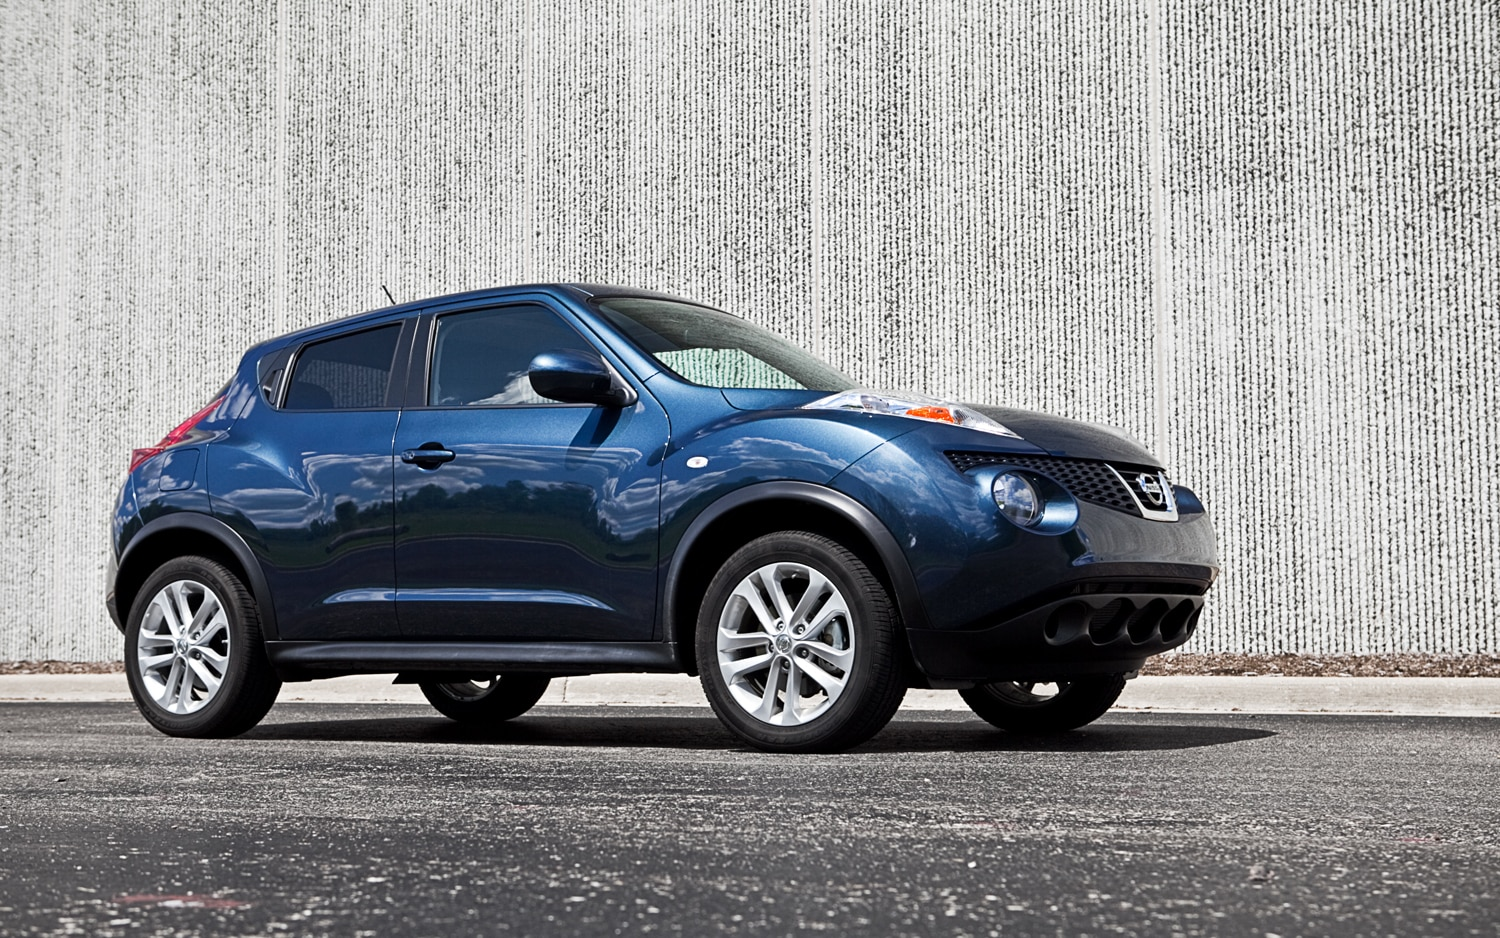 2011 Nissan Juke SV FWD M/T - Four Seasons Introduction - Automobile